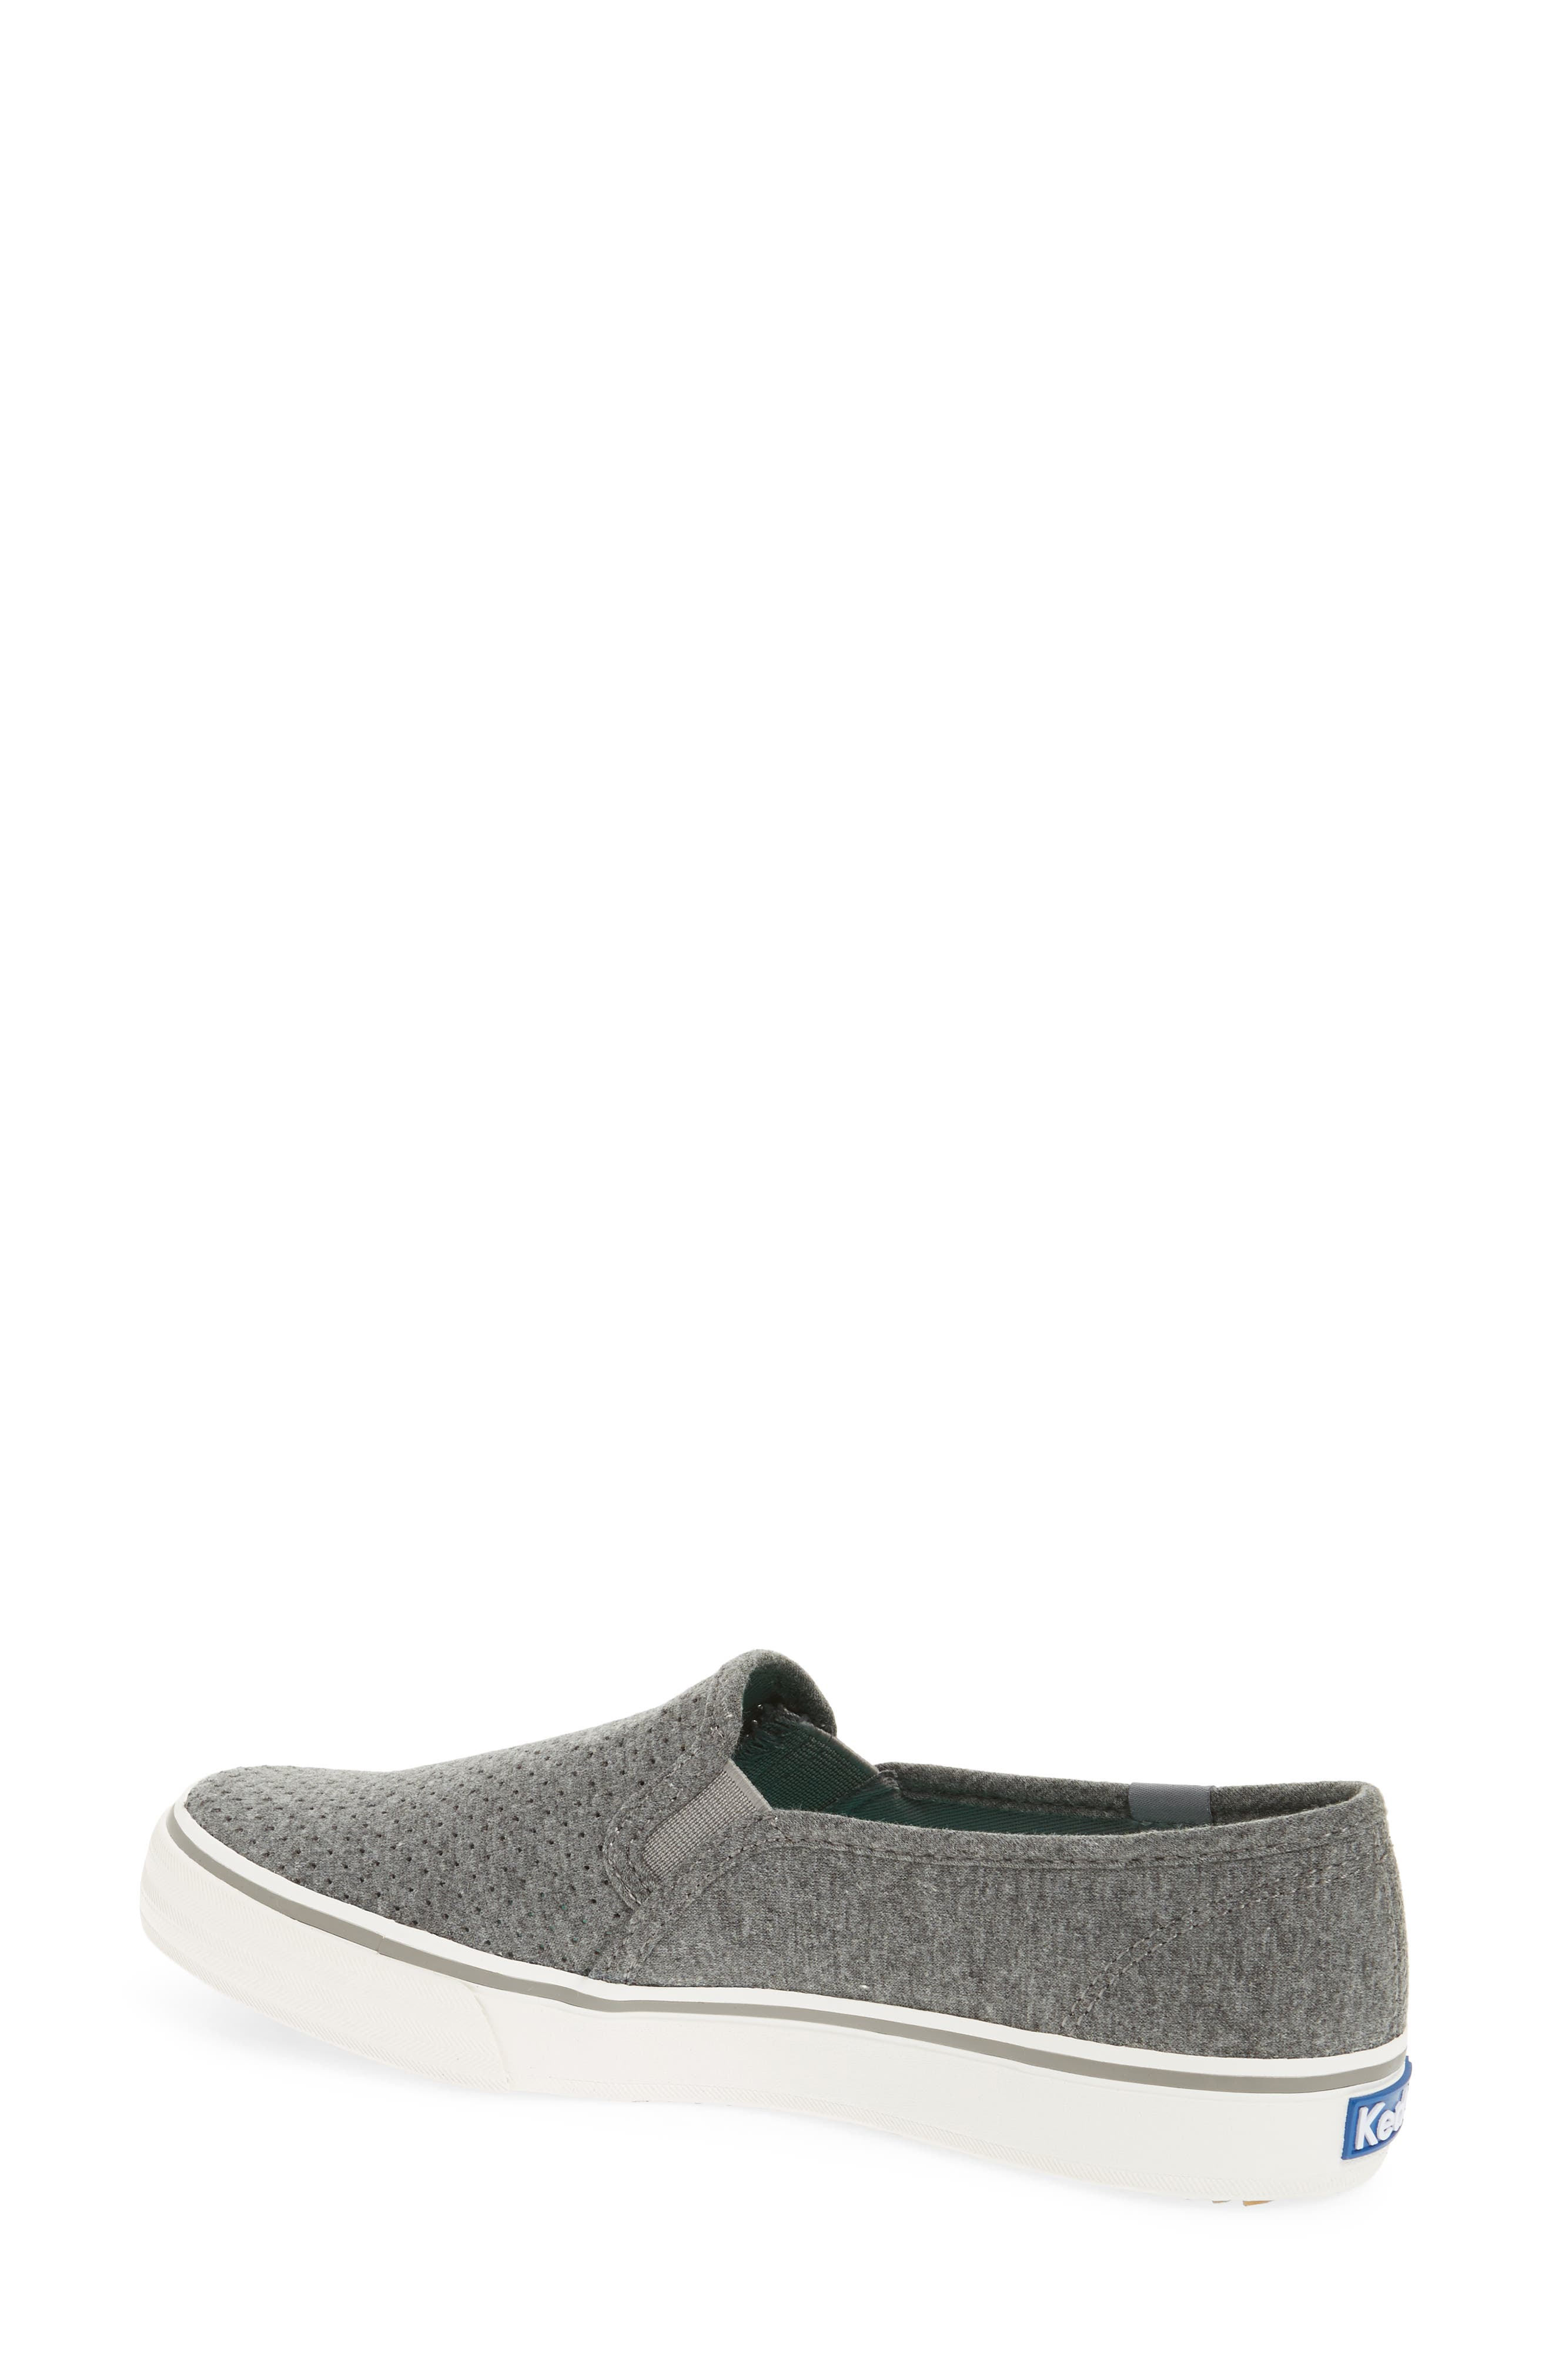 Double Decker Perforated Slip-On Sneaker,                             Alternate thumbnail 2, color,                             Charcoal